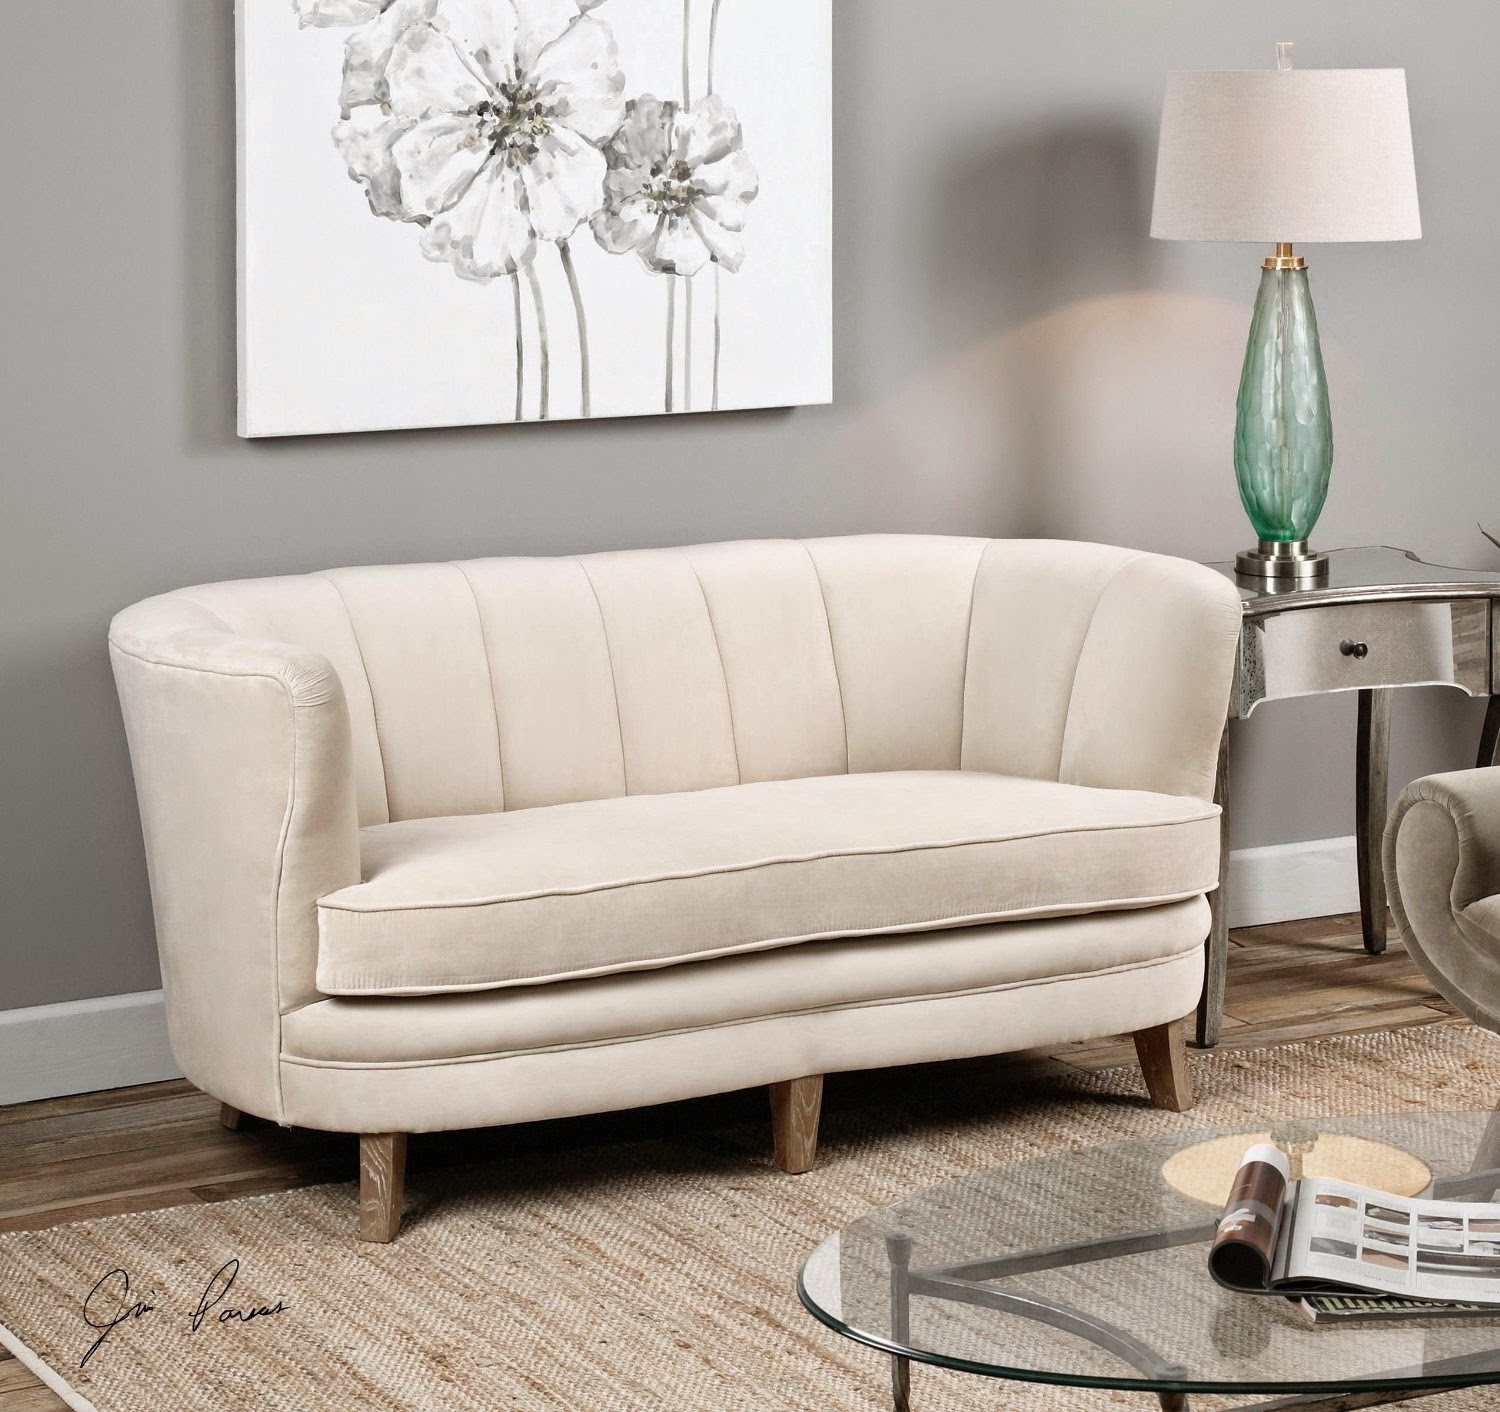 Curved Sofas For Sale: Curved Loveseat Sofa